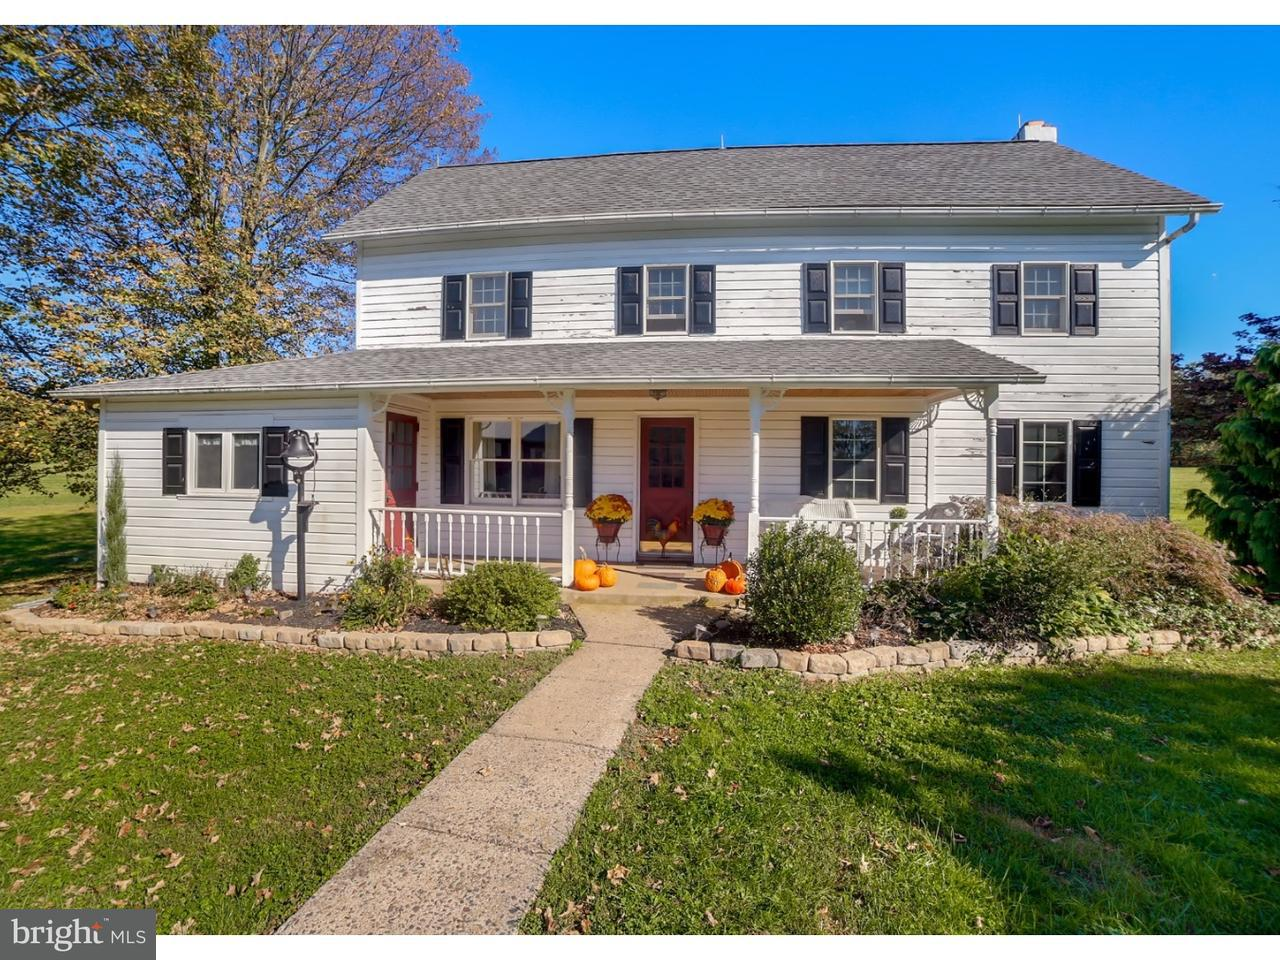 Single Family Home for Sale at 2475 KOONS Road Quakertown, Pennsylvania 18951 United States